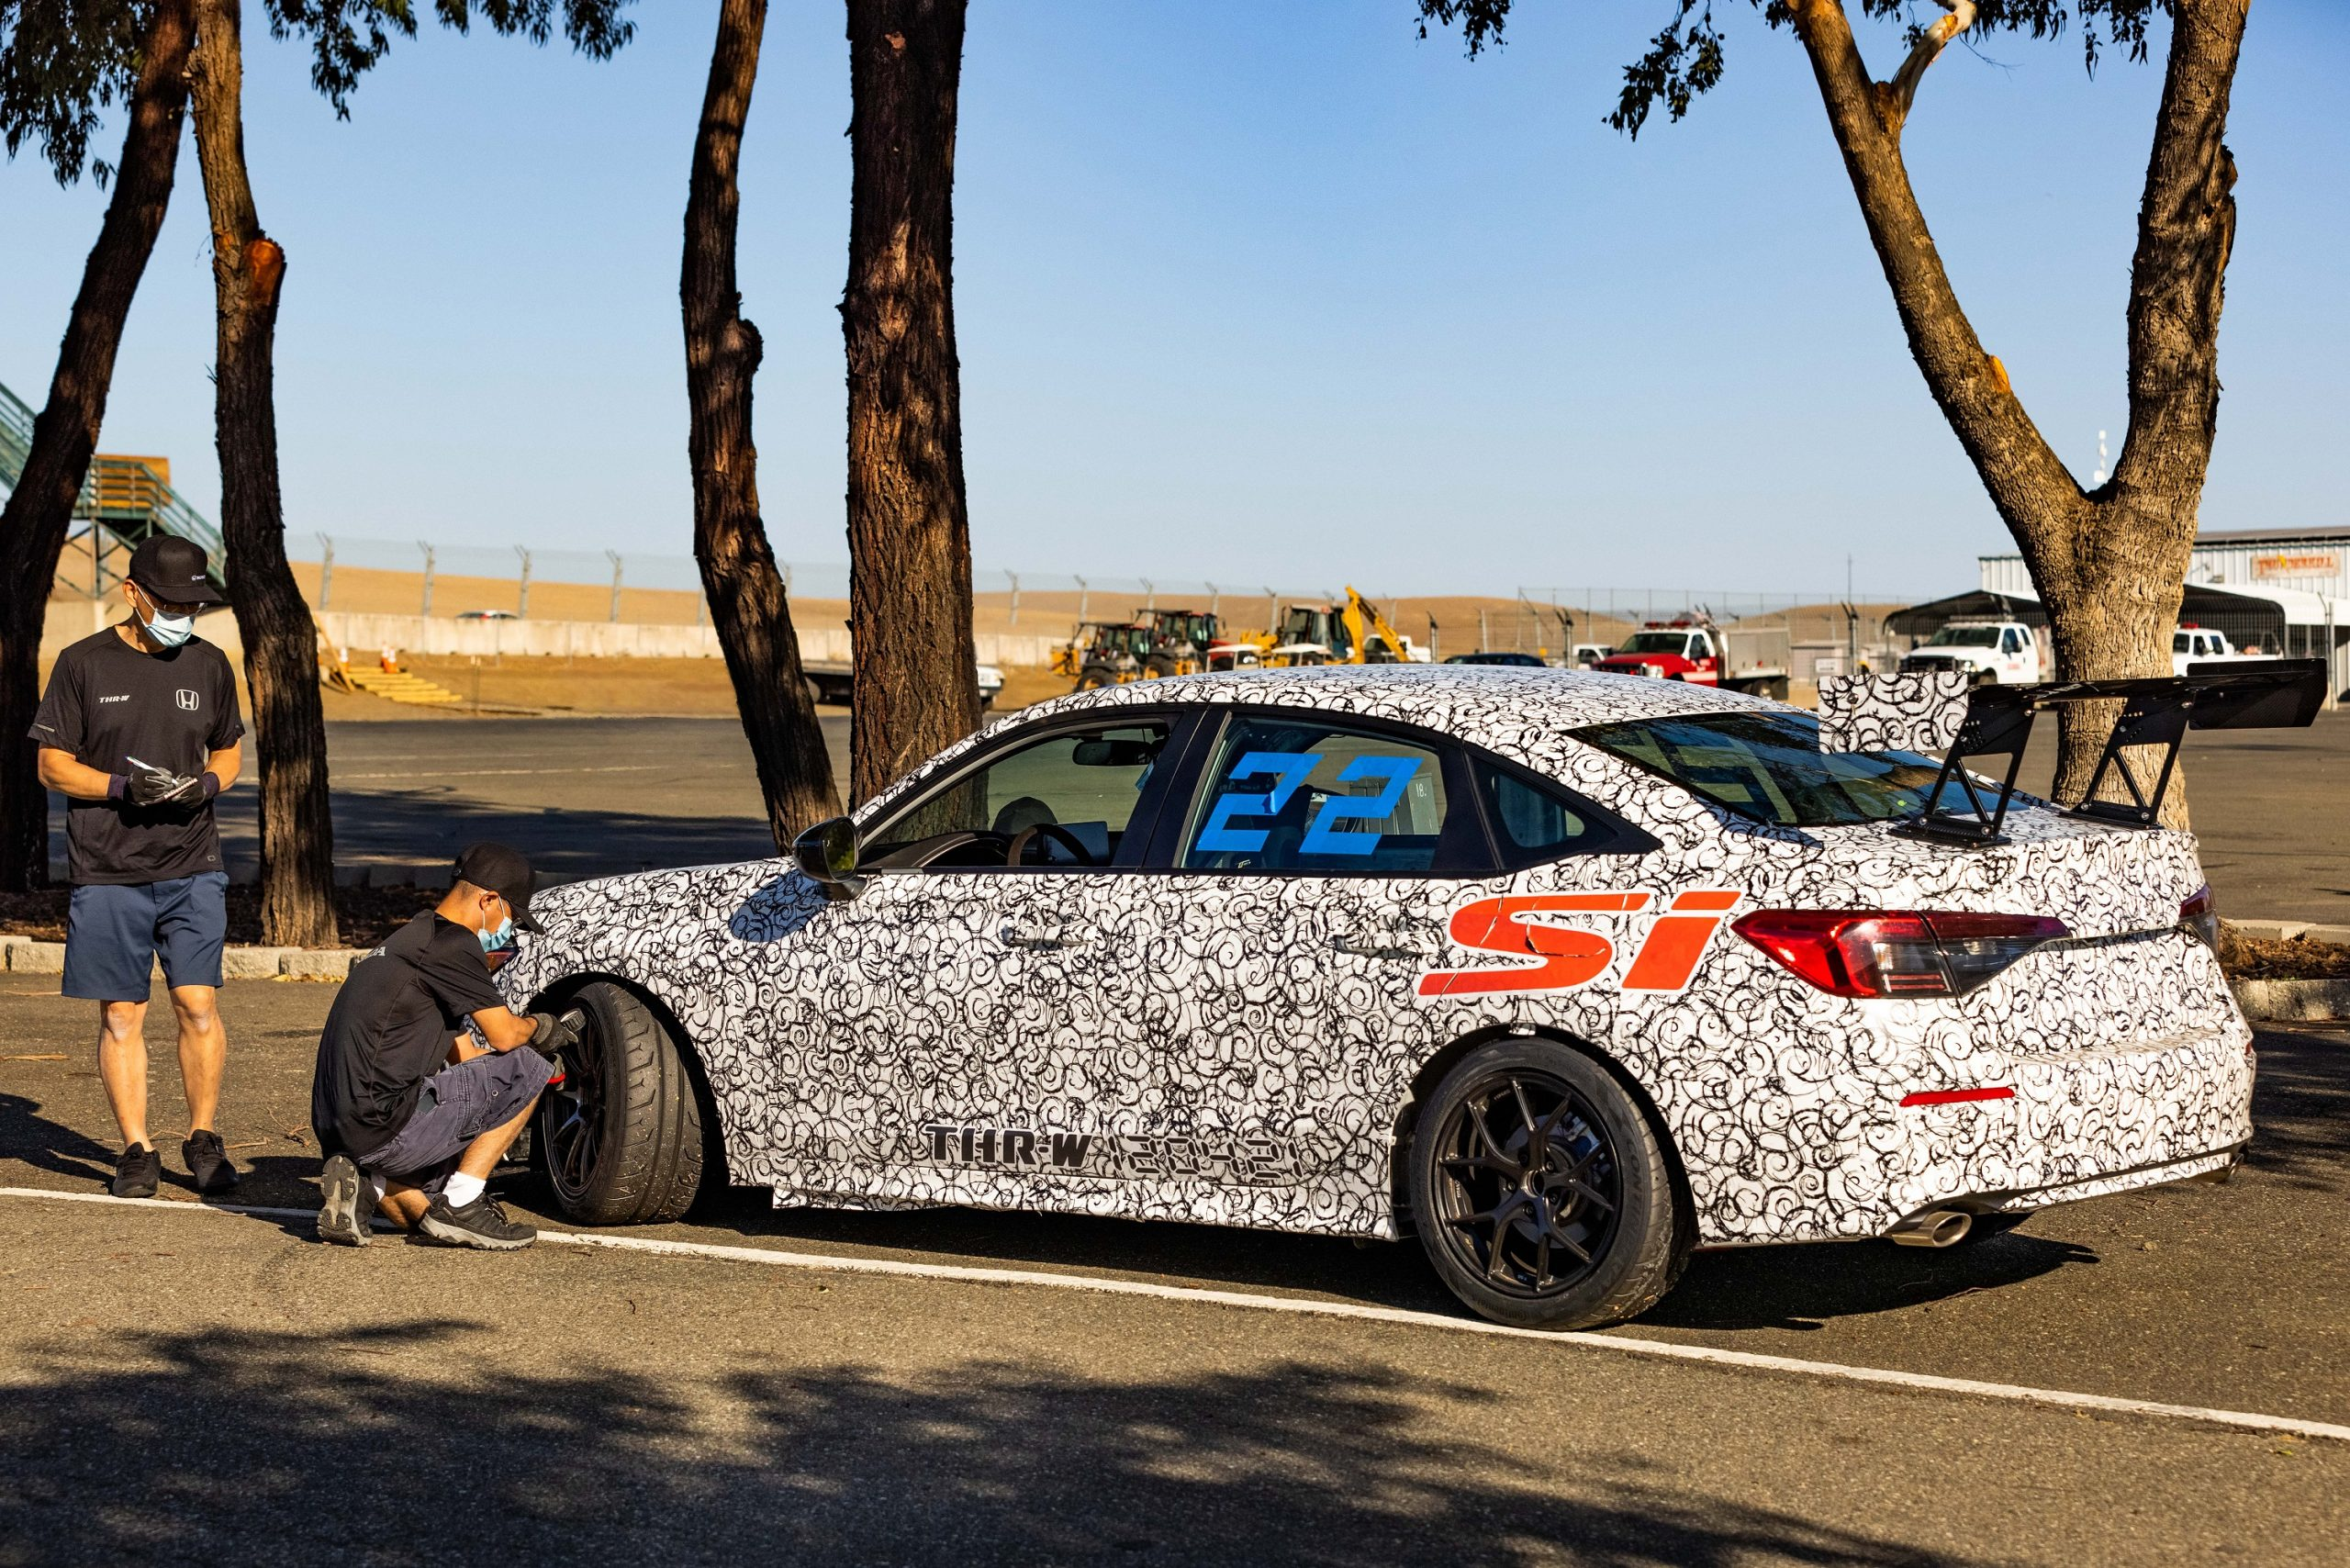 The white camo 2022 Civic Si gets its tires changed at a race track